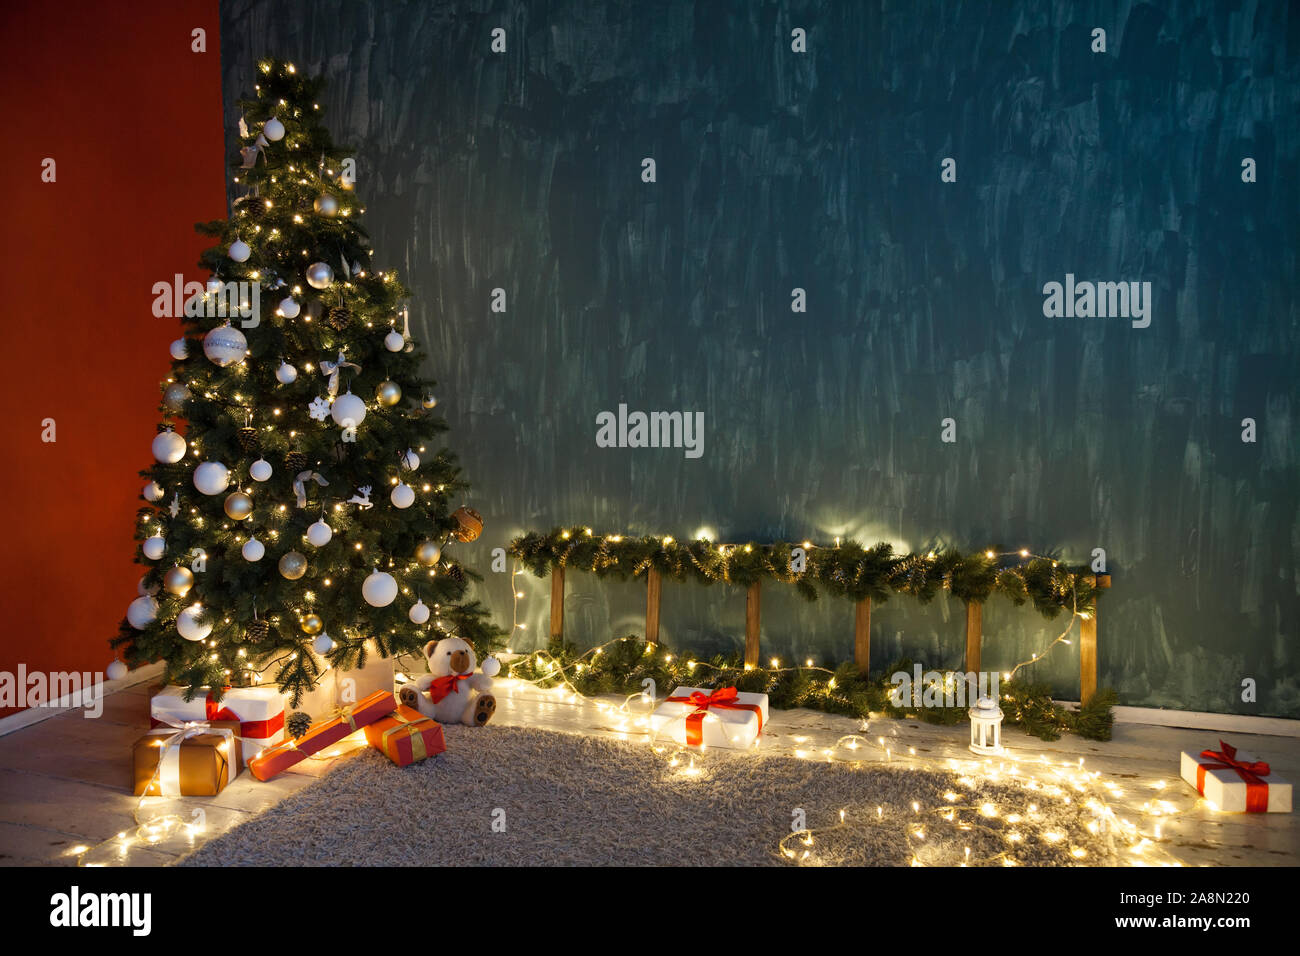 christmas tree lights garlands new year decoration gifts as background 2A8N220